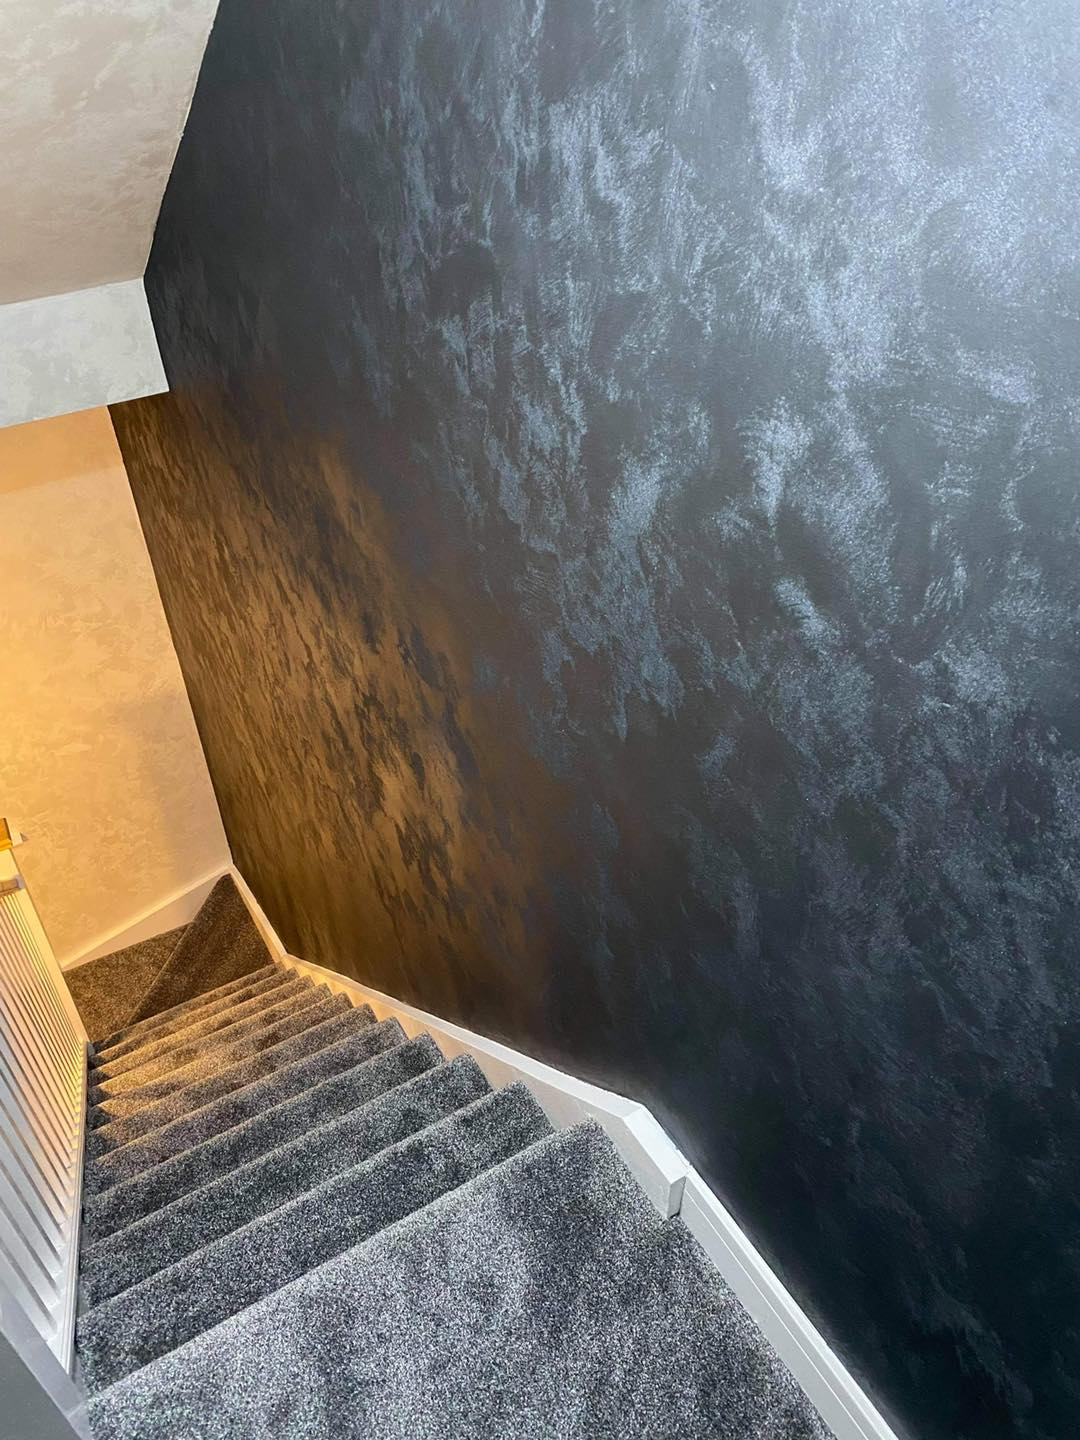 Venetian Plastering North West - Venetian Plaster stairs Feature Wall Manchester Cheshire June 2021